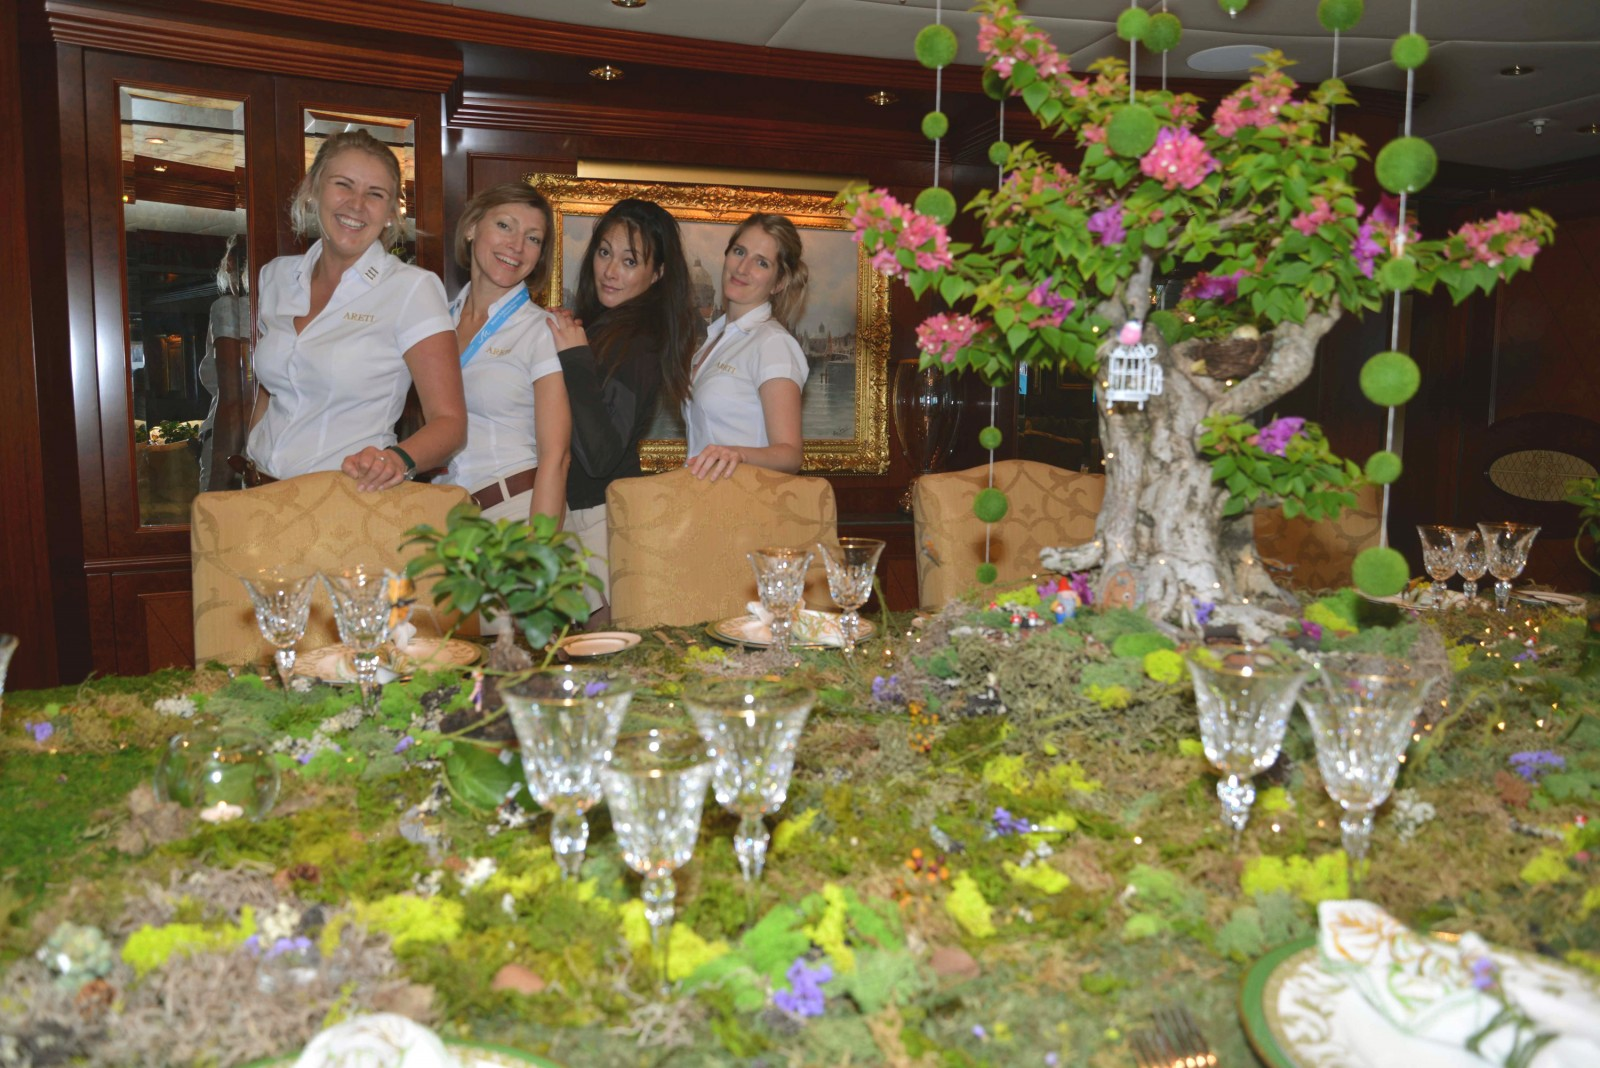 M/Y Areti – Chief Stew Bethany O'Hara, Purser Iryna Petrova, Sous Chef Steph Bidois and Stew Josie Piers created an Enchanted Forest setting, with a gnome, fairy garden, quail eggs, birds, and a 70 year old bonsai tree trunk.